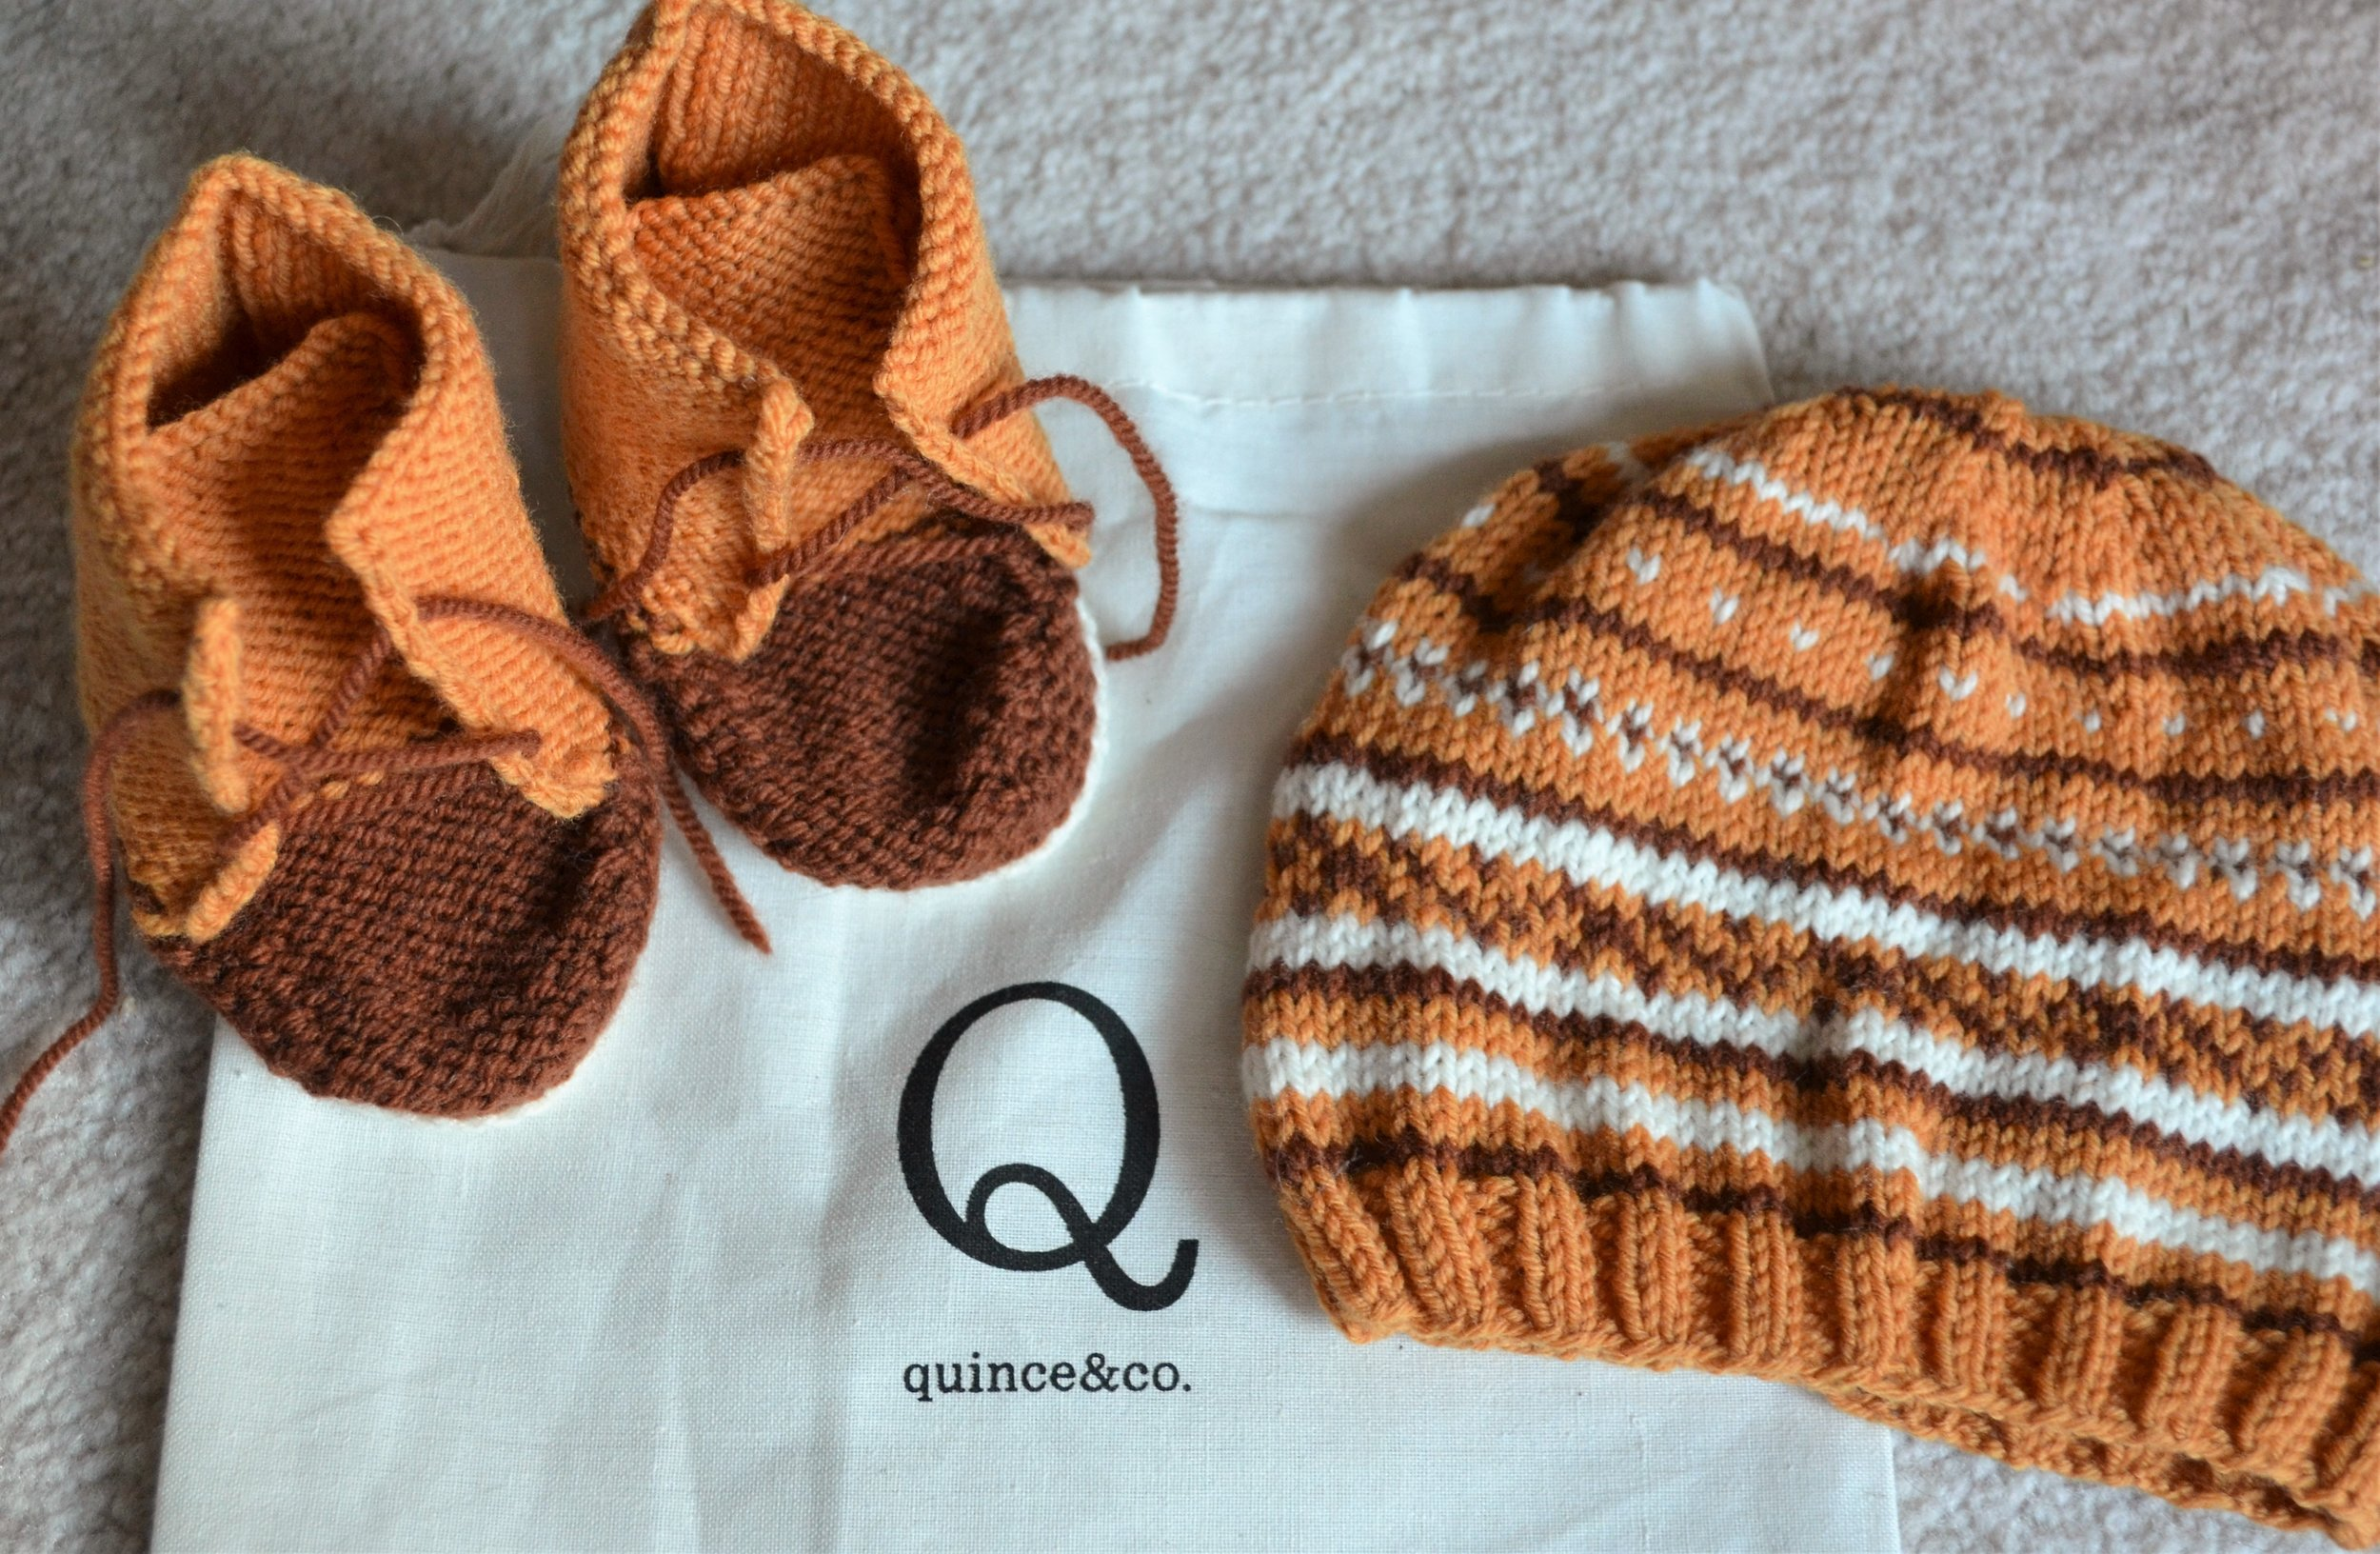 Quince & Co Baby Duck Boots and Knit Hat by Warp or Weft